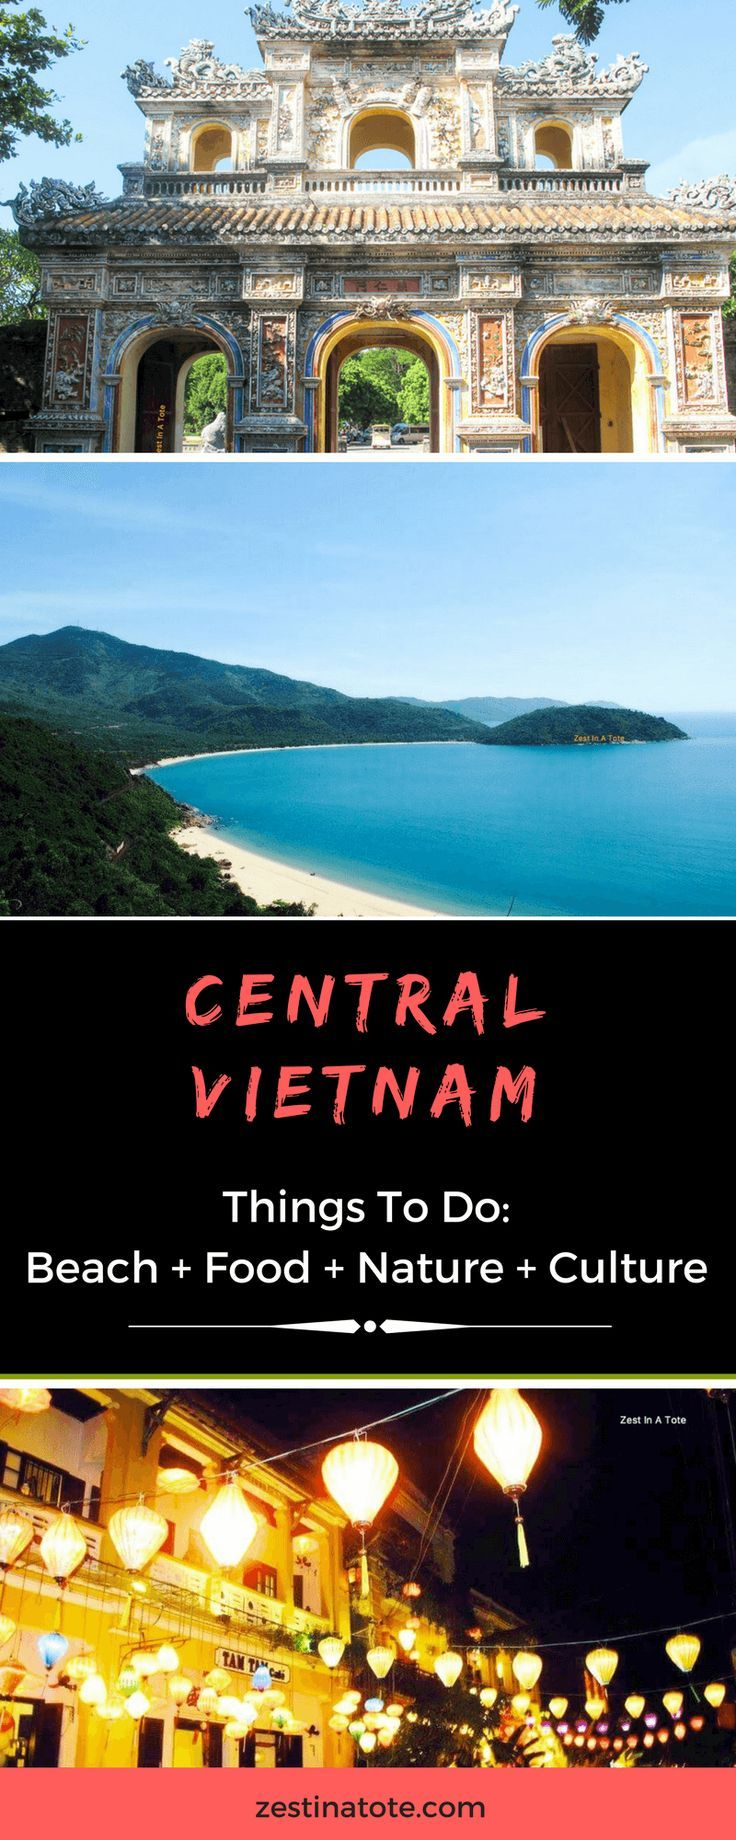 We spent 4 days in Central Vietnam – explored the cultural city of Hue, indulged in mouth-watering food in Hoi An, lazed around at the private beach of our luxury resort in Danang, and took a cycling tour to experience the village life beyond the cities.